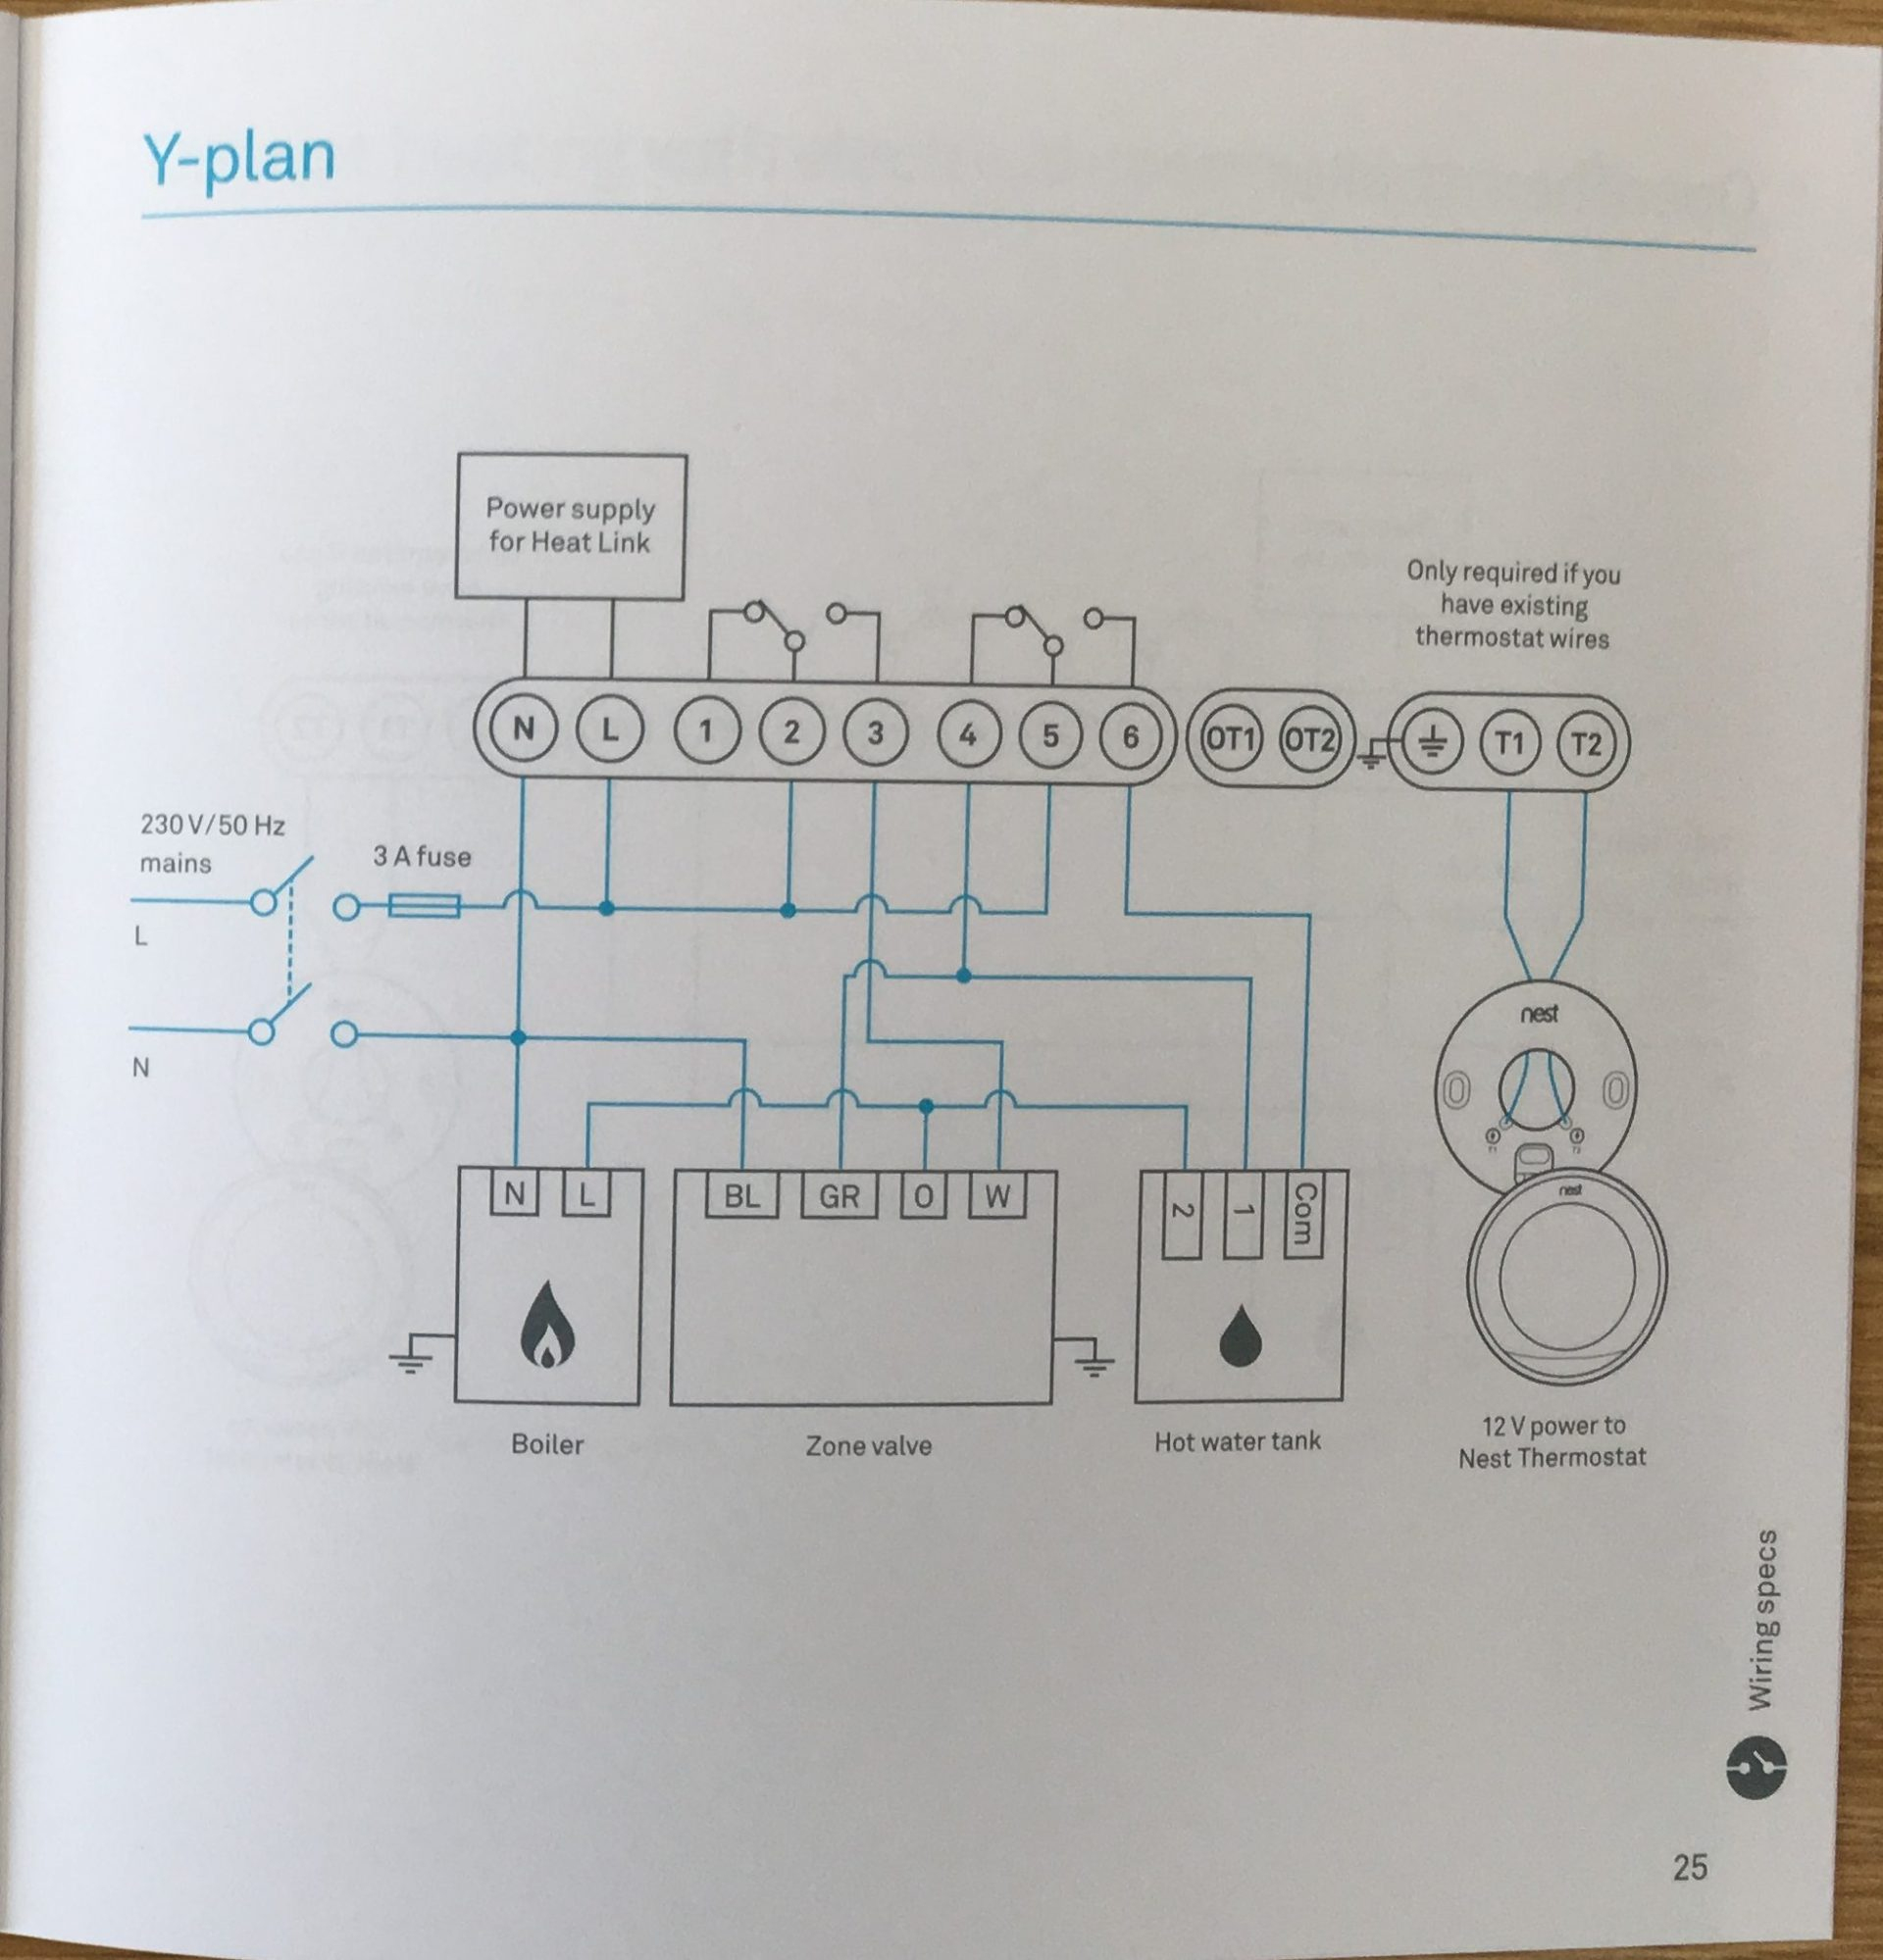 How To Install The Nest Learning Thermostat (3Rd Gen) In A Y-Plan - Nest 2 Zone Wiring Diagram